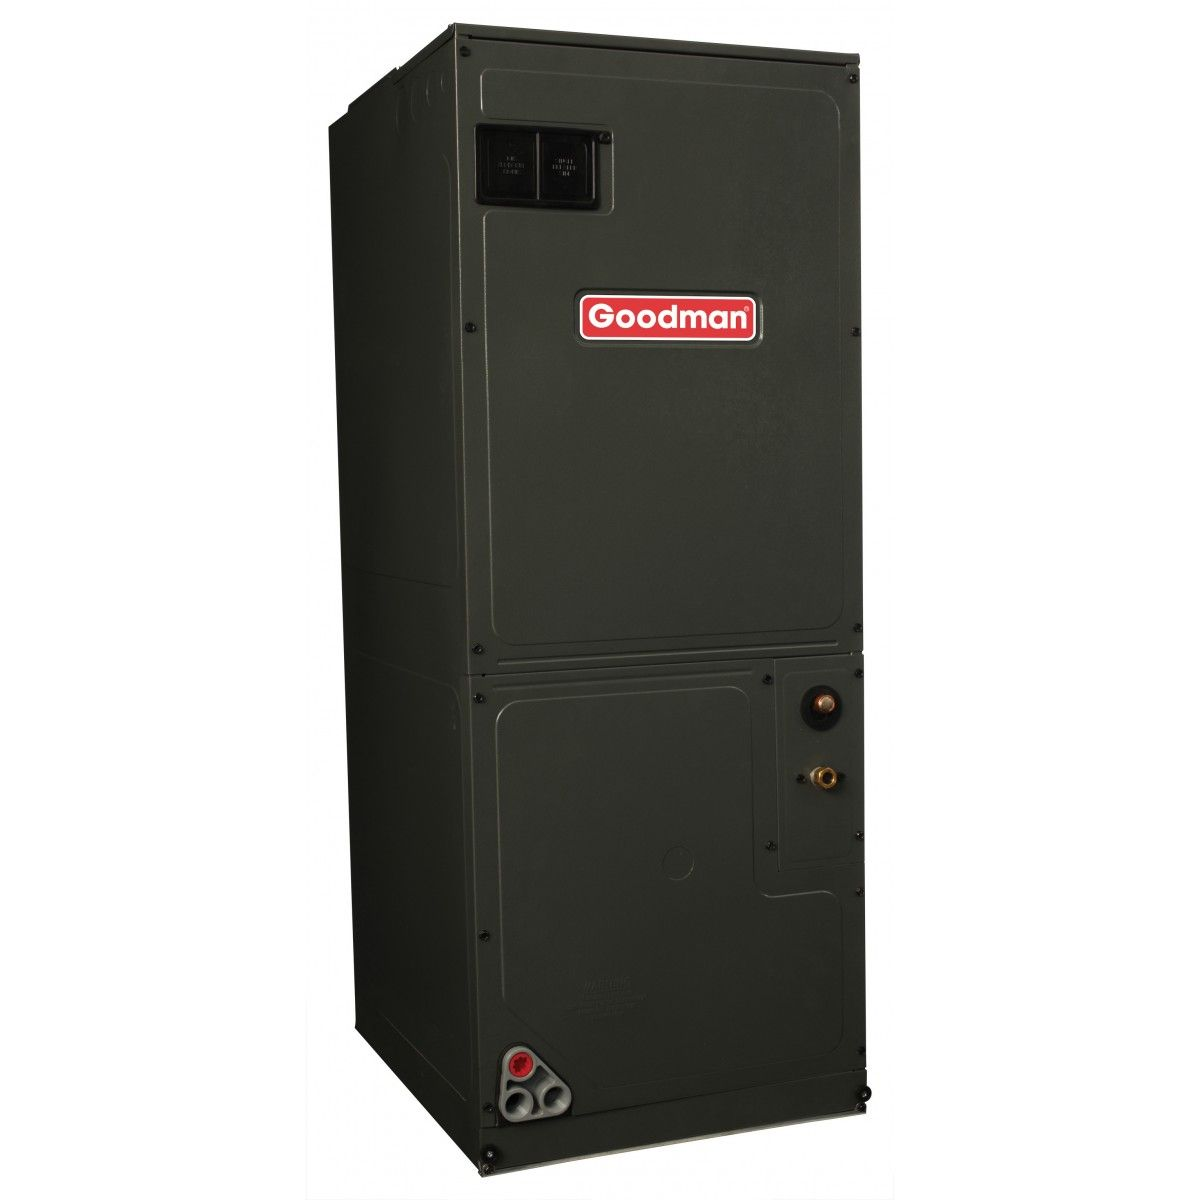 Goodman 3 0 ton 16 seer heat pump system star energy in 2 for 5 star energy